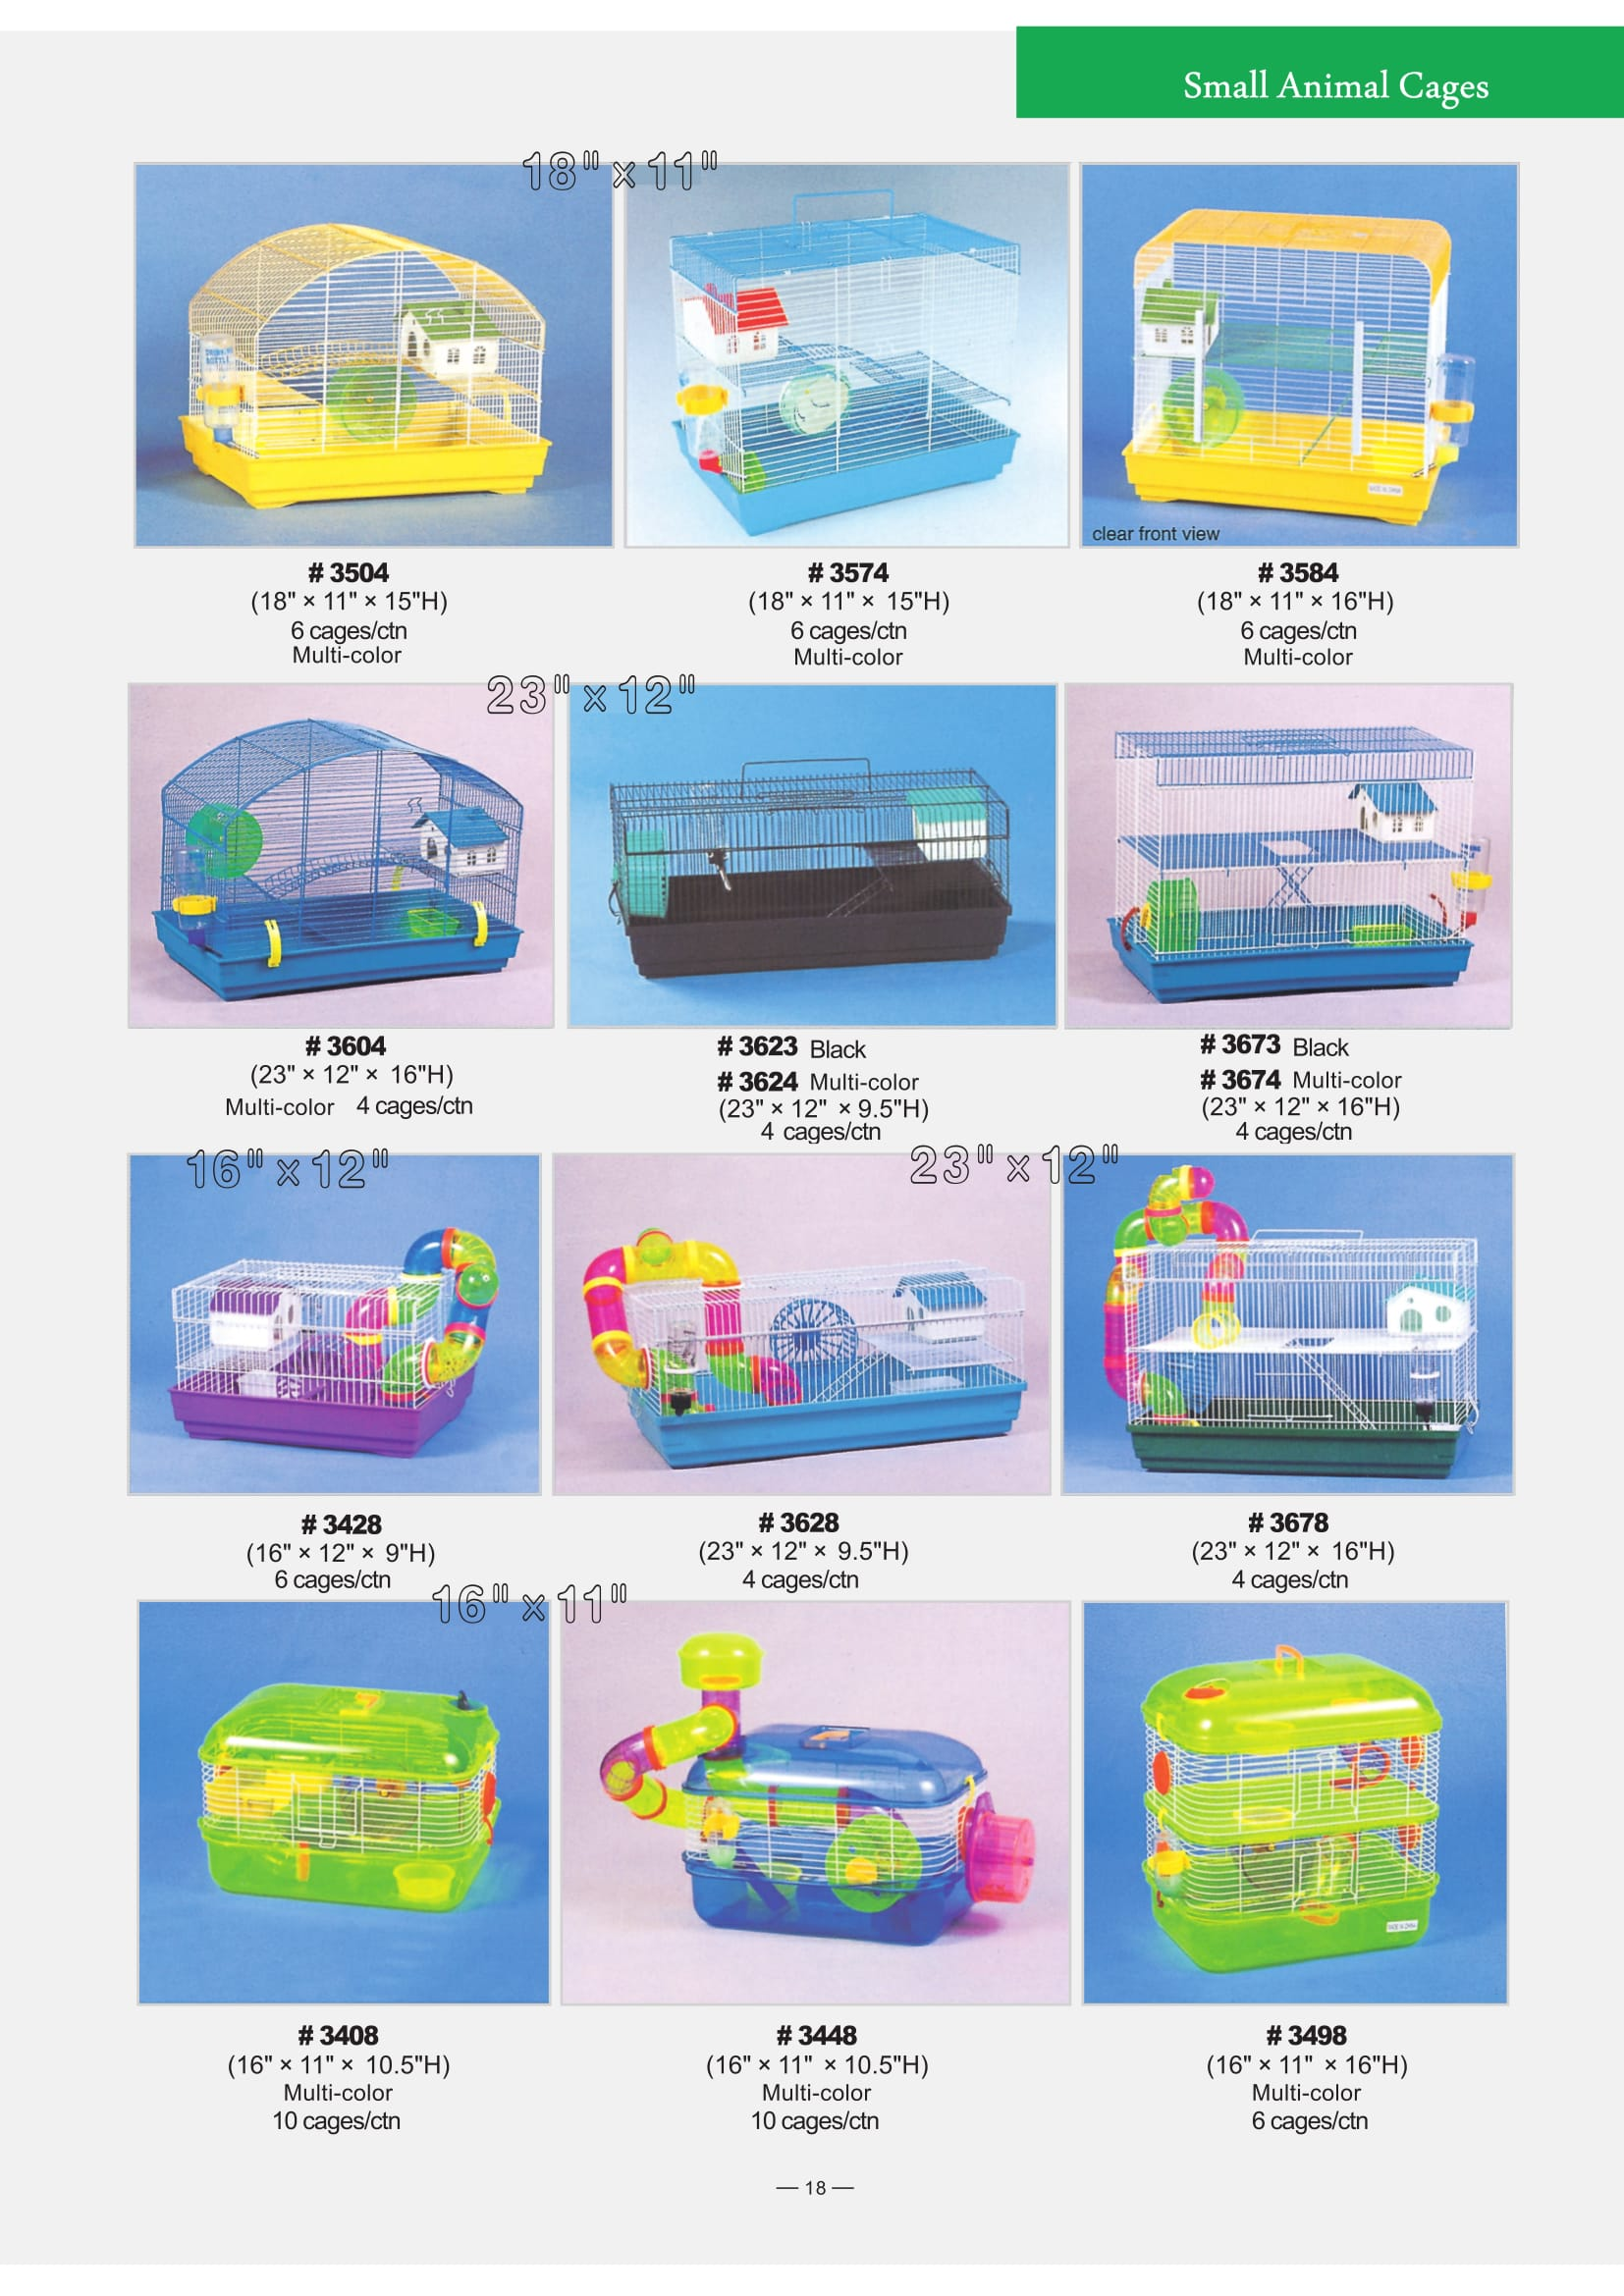 7. Small Animals Cages-2